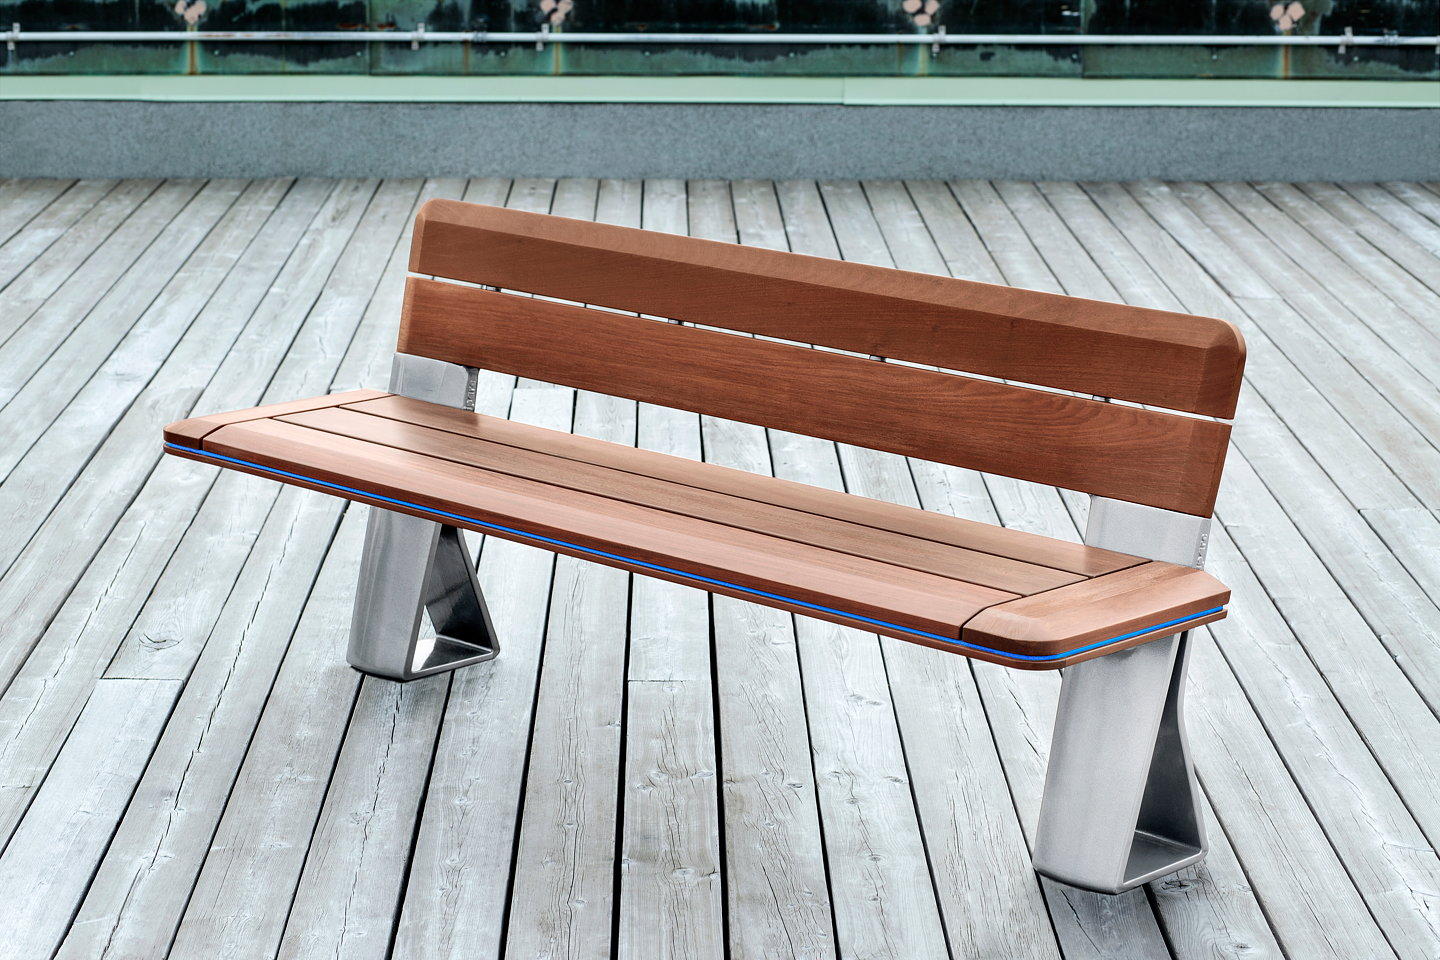 Delta Street Furniture Collection 07 · Delta Street Furniture Collection 08  ...